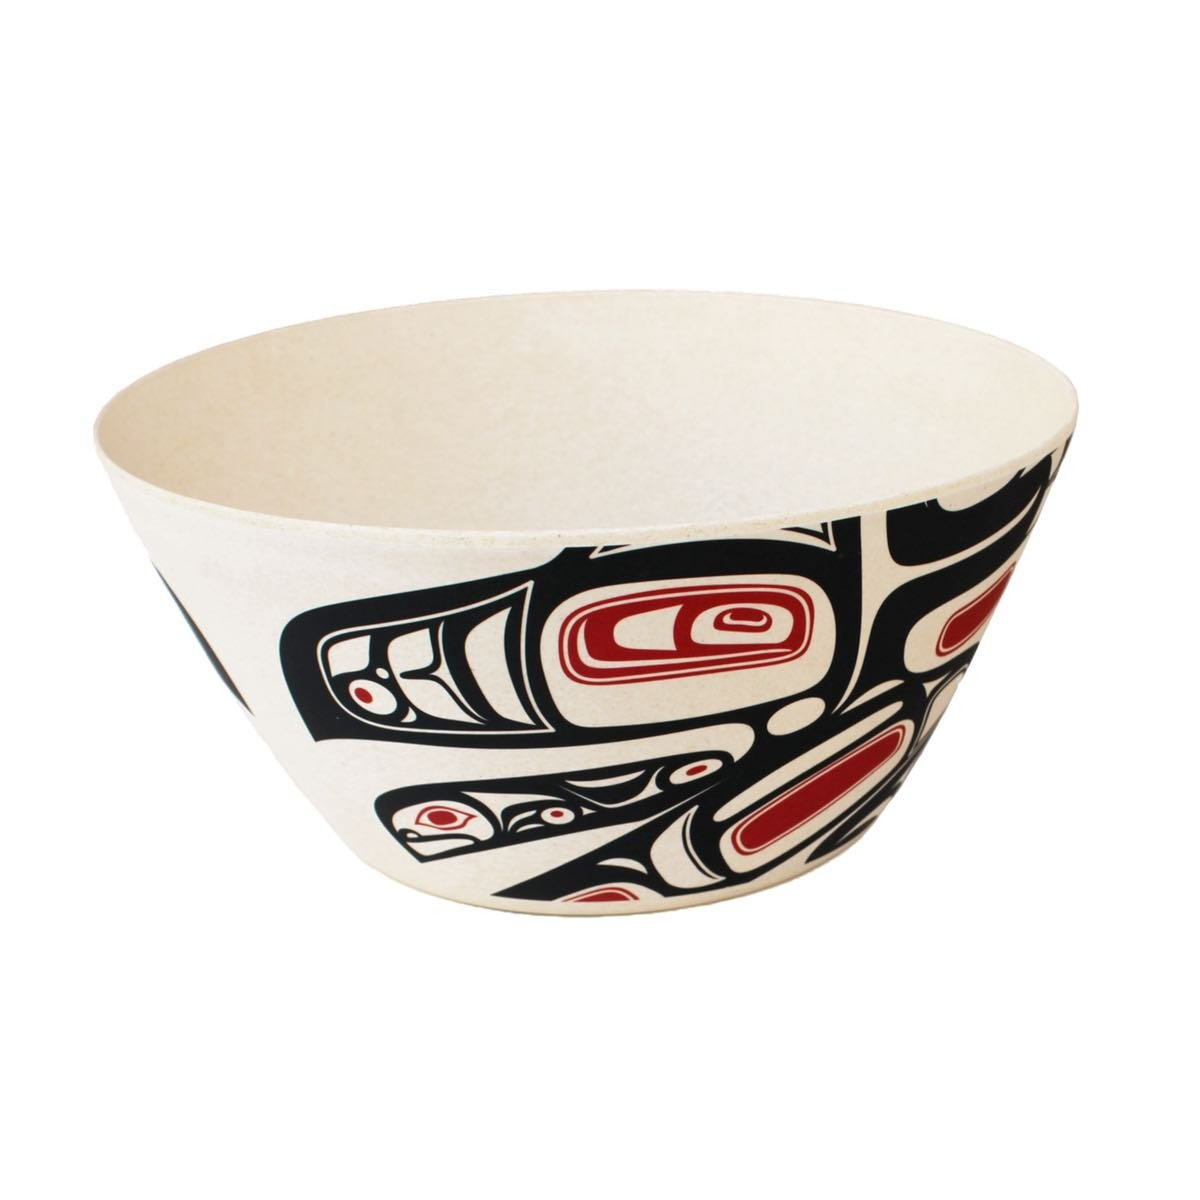 Small Bamboo Fibre Bowl by Morgan Asoyuf, Tsimshian